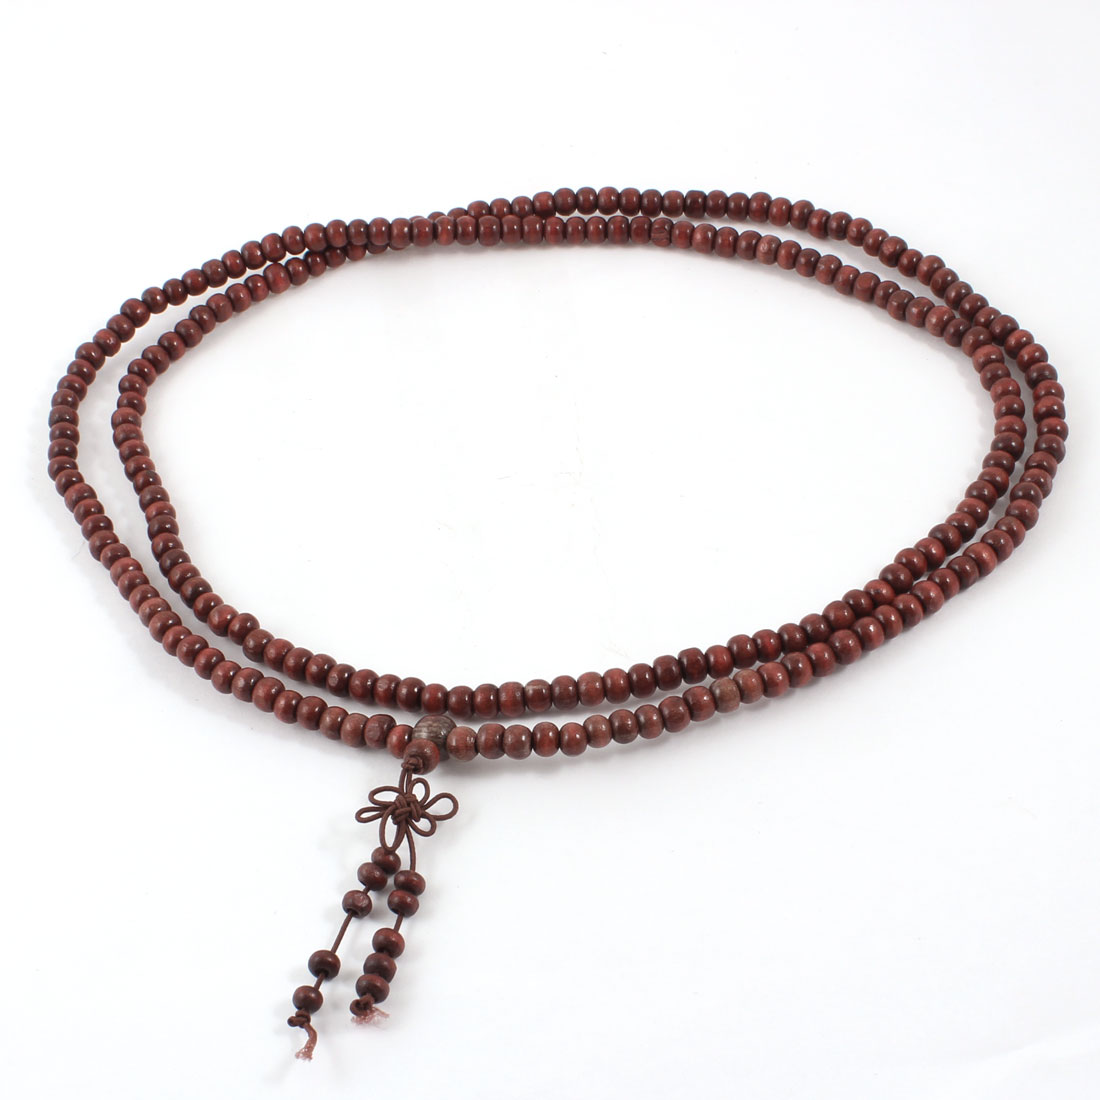 Unisex Sandalwood Prayer Beads Buddha Buddhist Necklace 106cm Chocolate Color